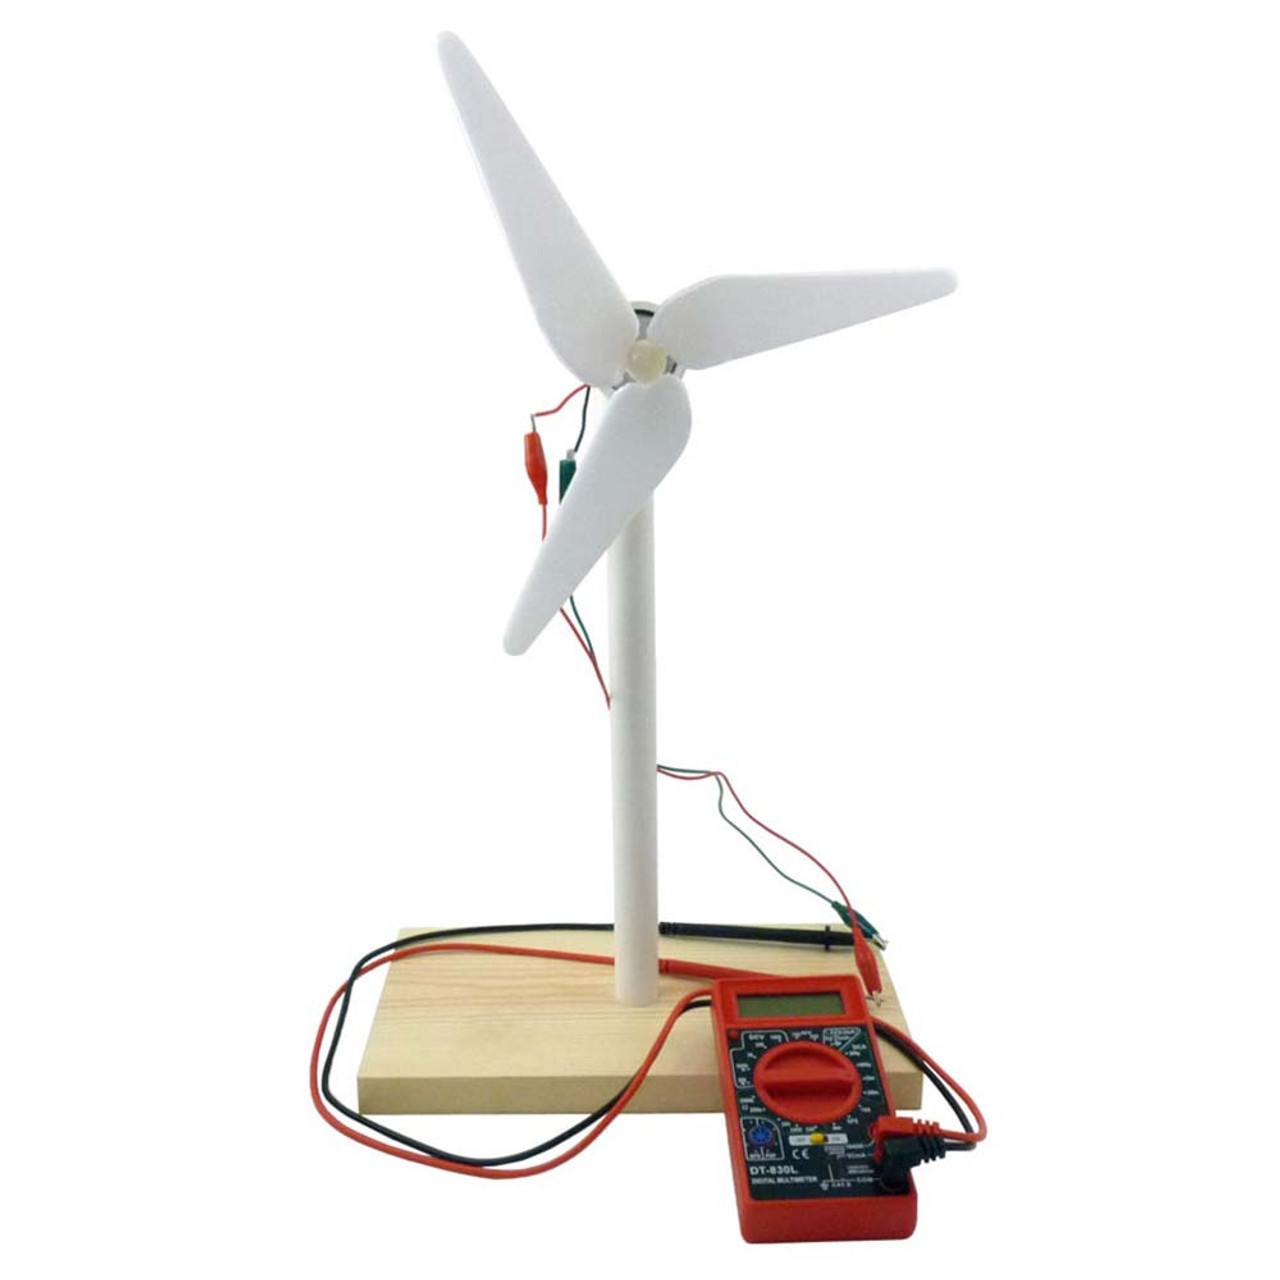 hight resolution of wind turbine kit for students home science tools home built wind generator wiring